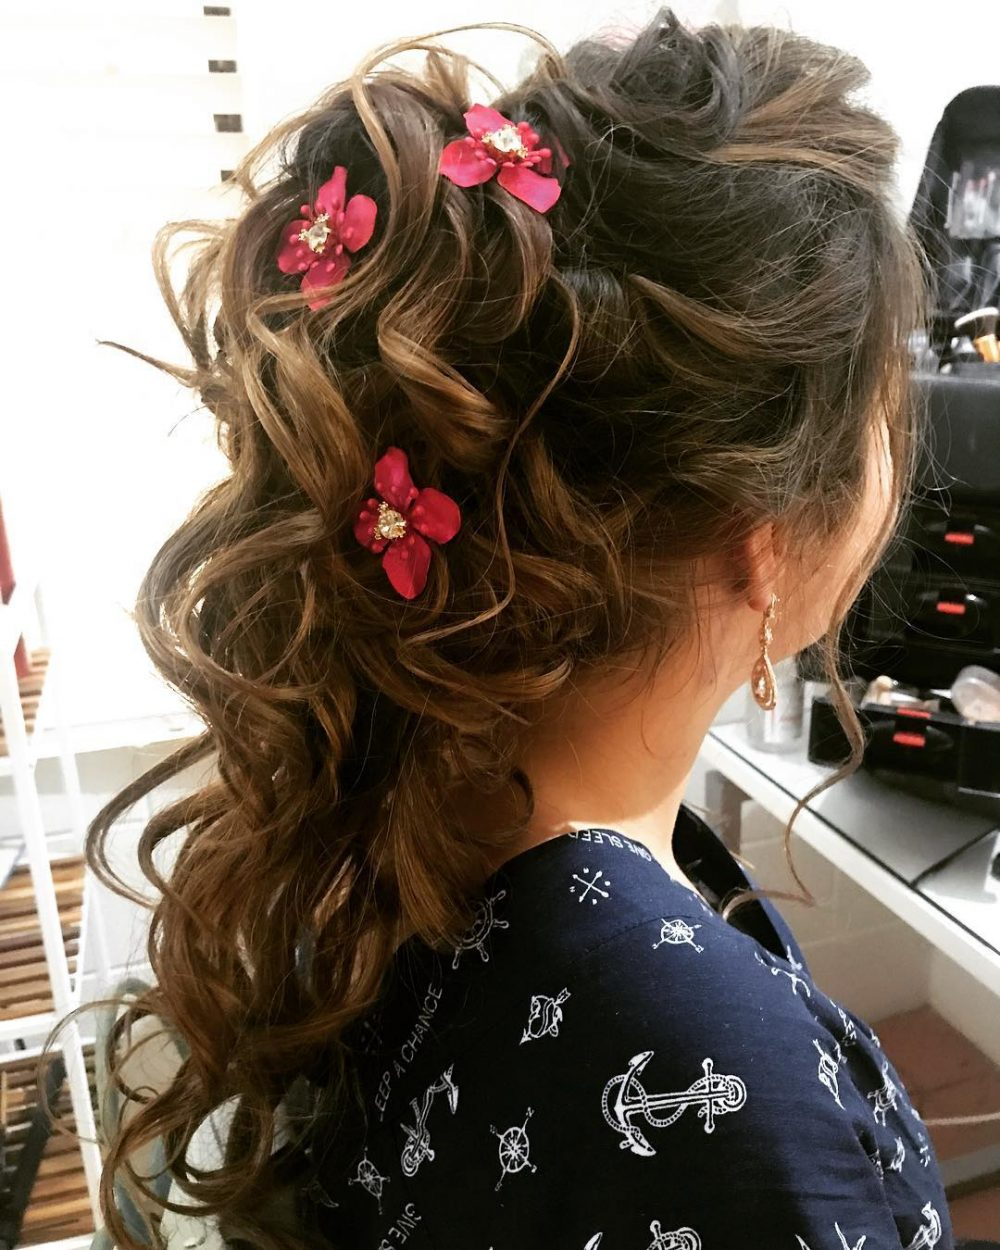 30 Stunning Wedding Hairstyles Ideas In 2019: 30 Best Prom Hair Ideas 2019: Prom Hairstyles For Long